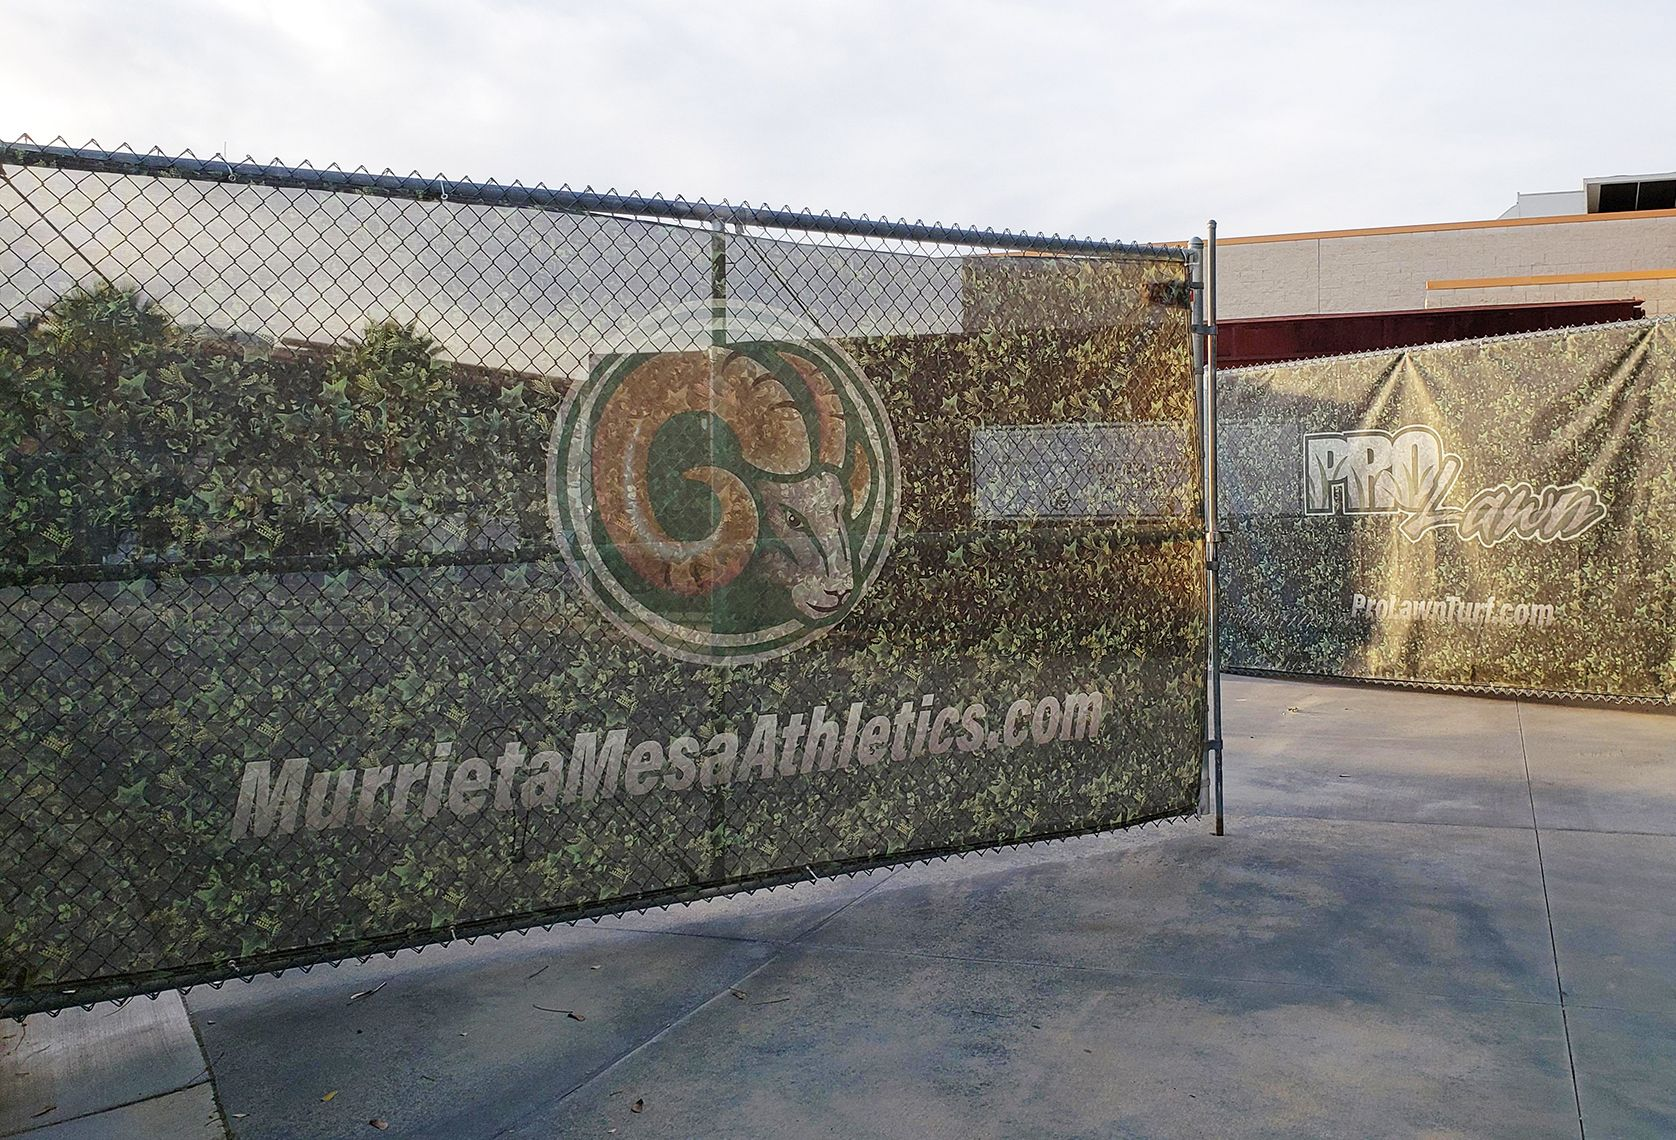 Outdoor mesh banner for athletics company